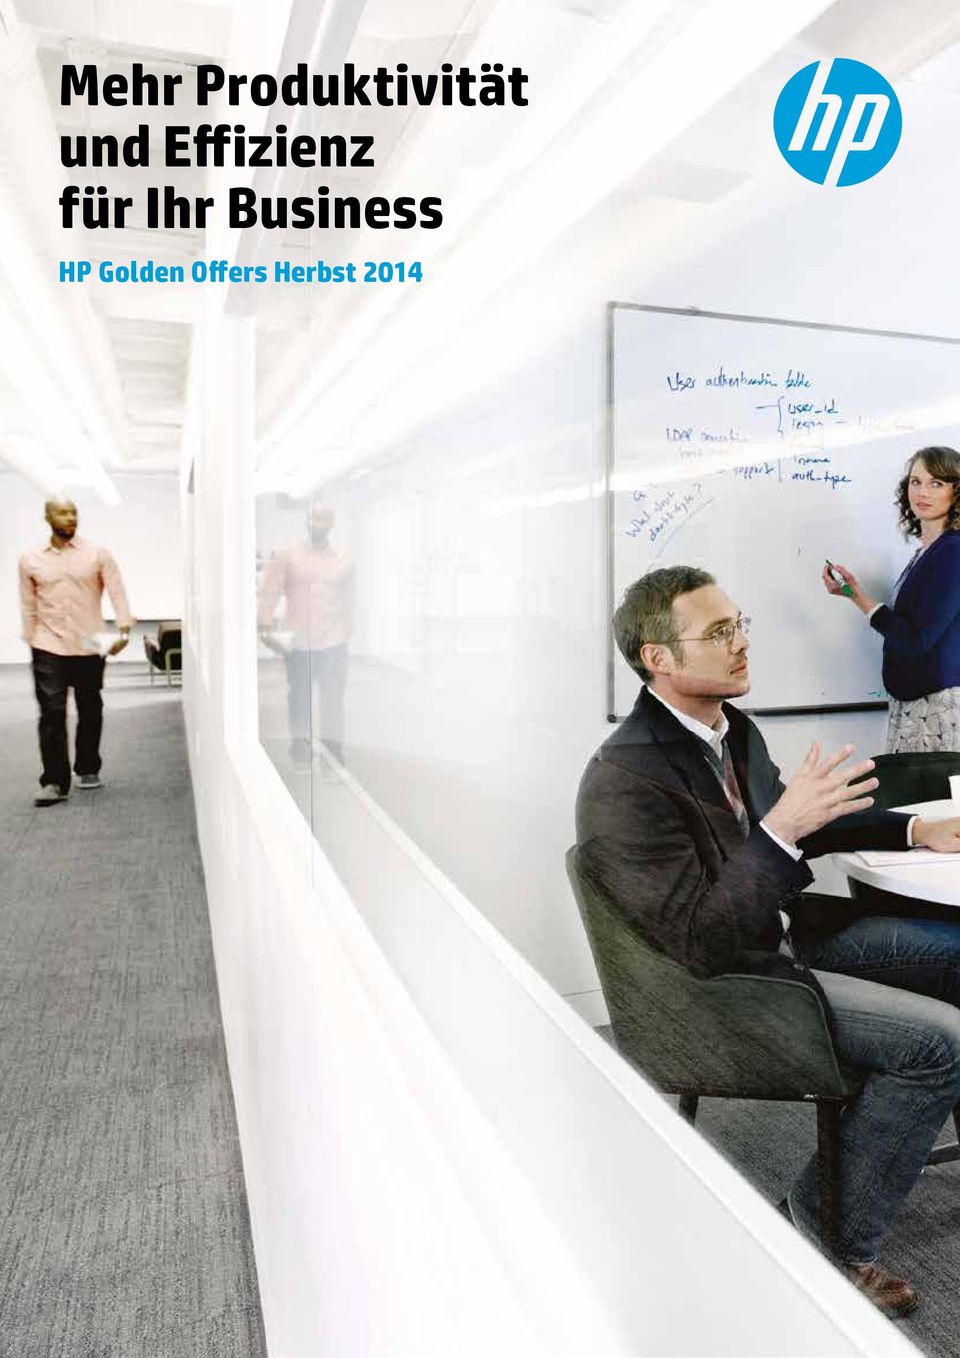 Ihr Business HP